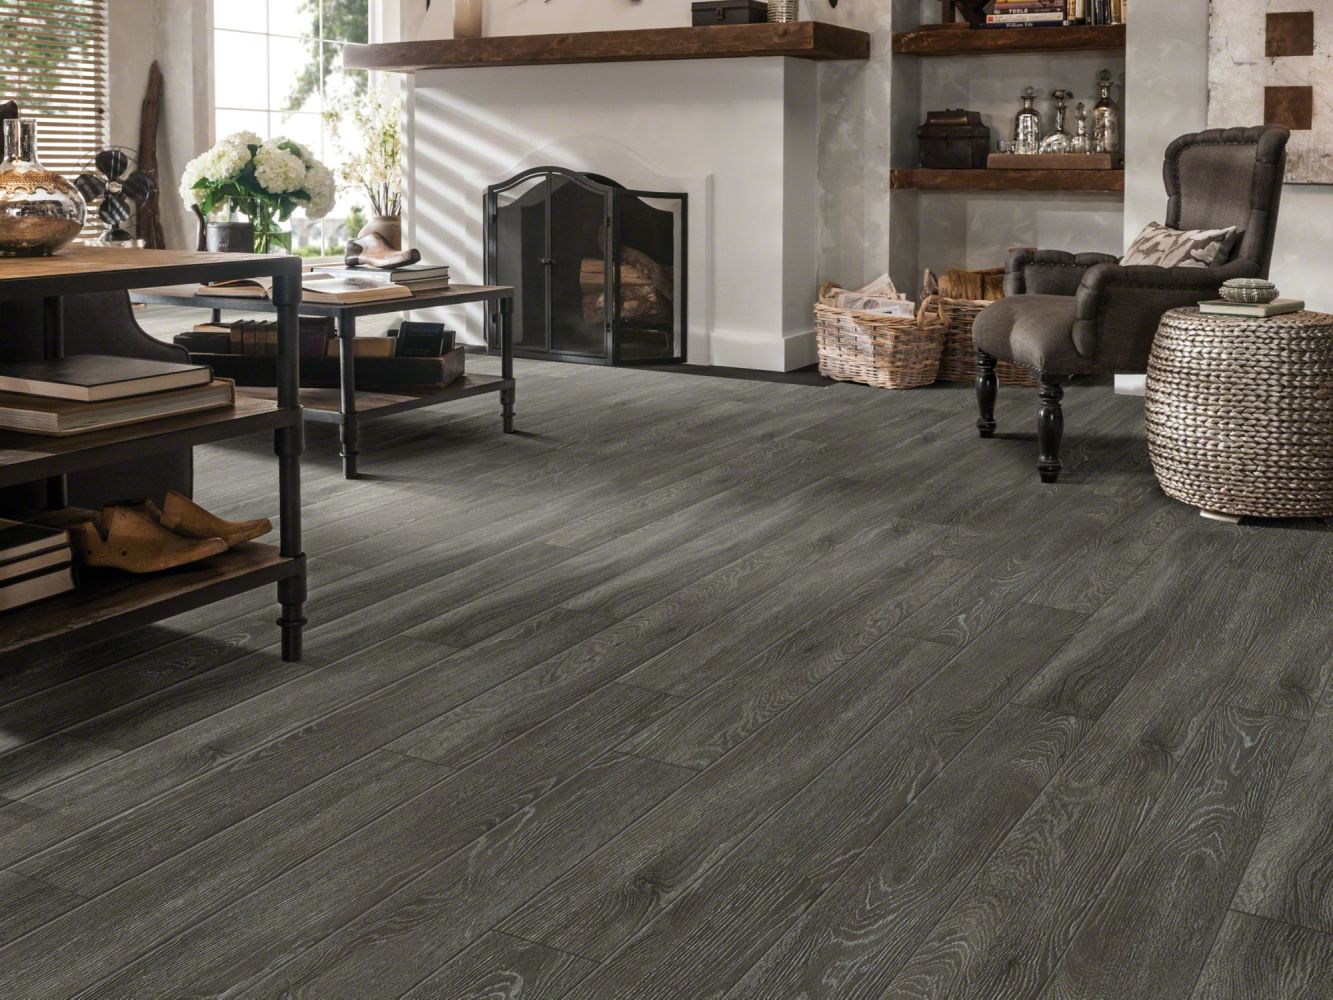 Shaw Floors Vinyl Residential Uptown Now Wpc+ Michigan Ave 00564_0999V